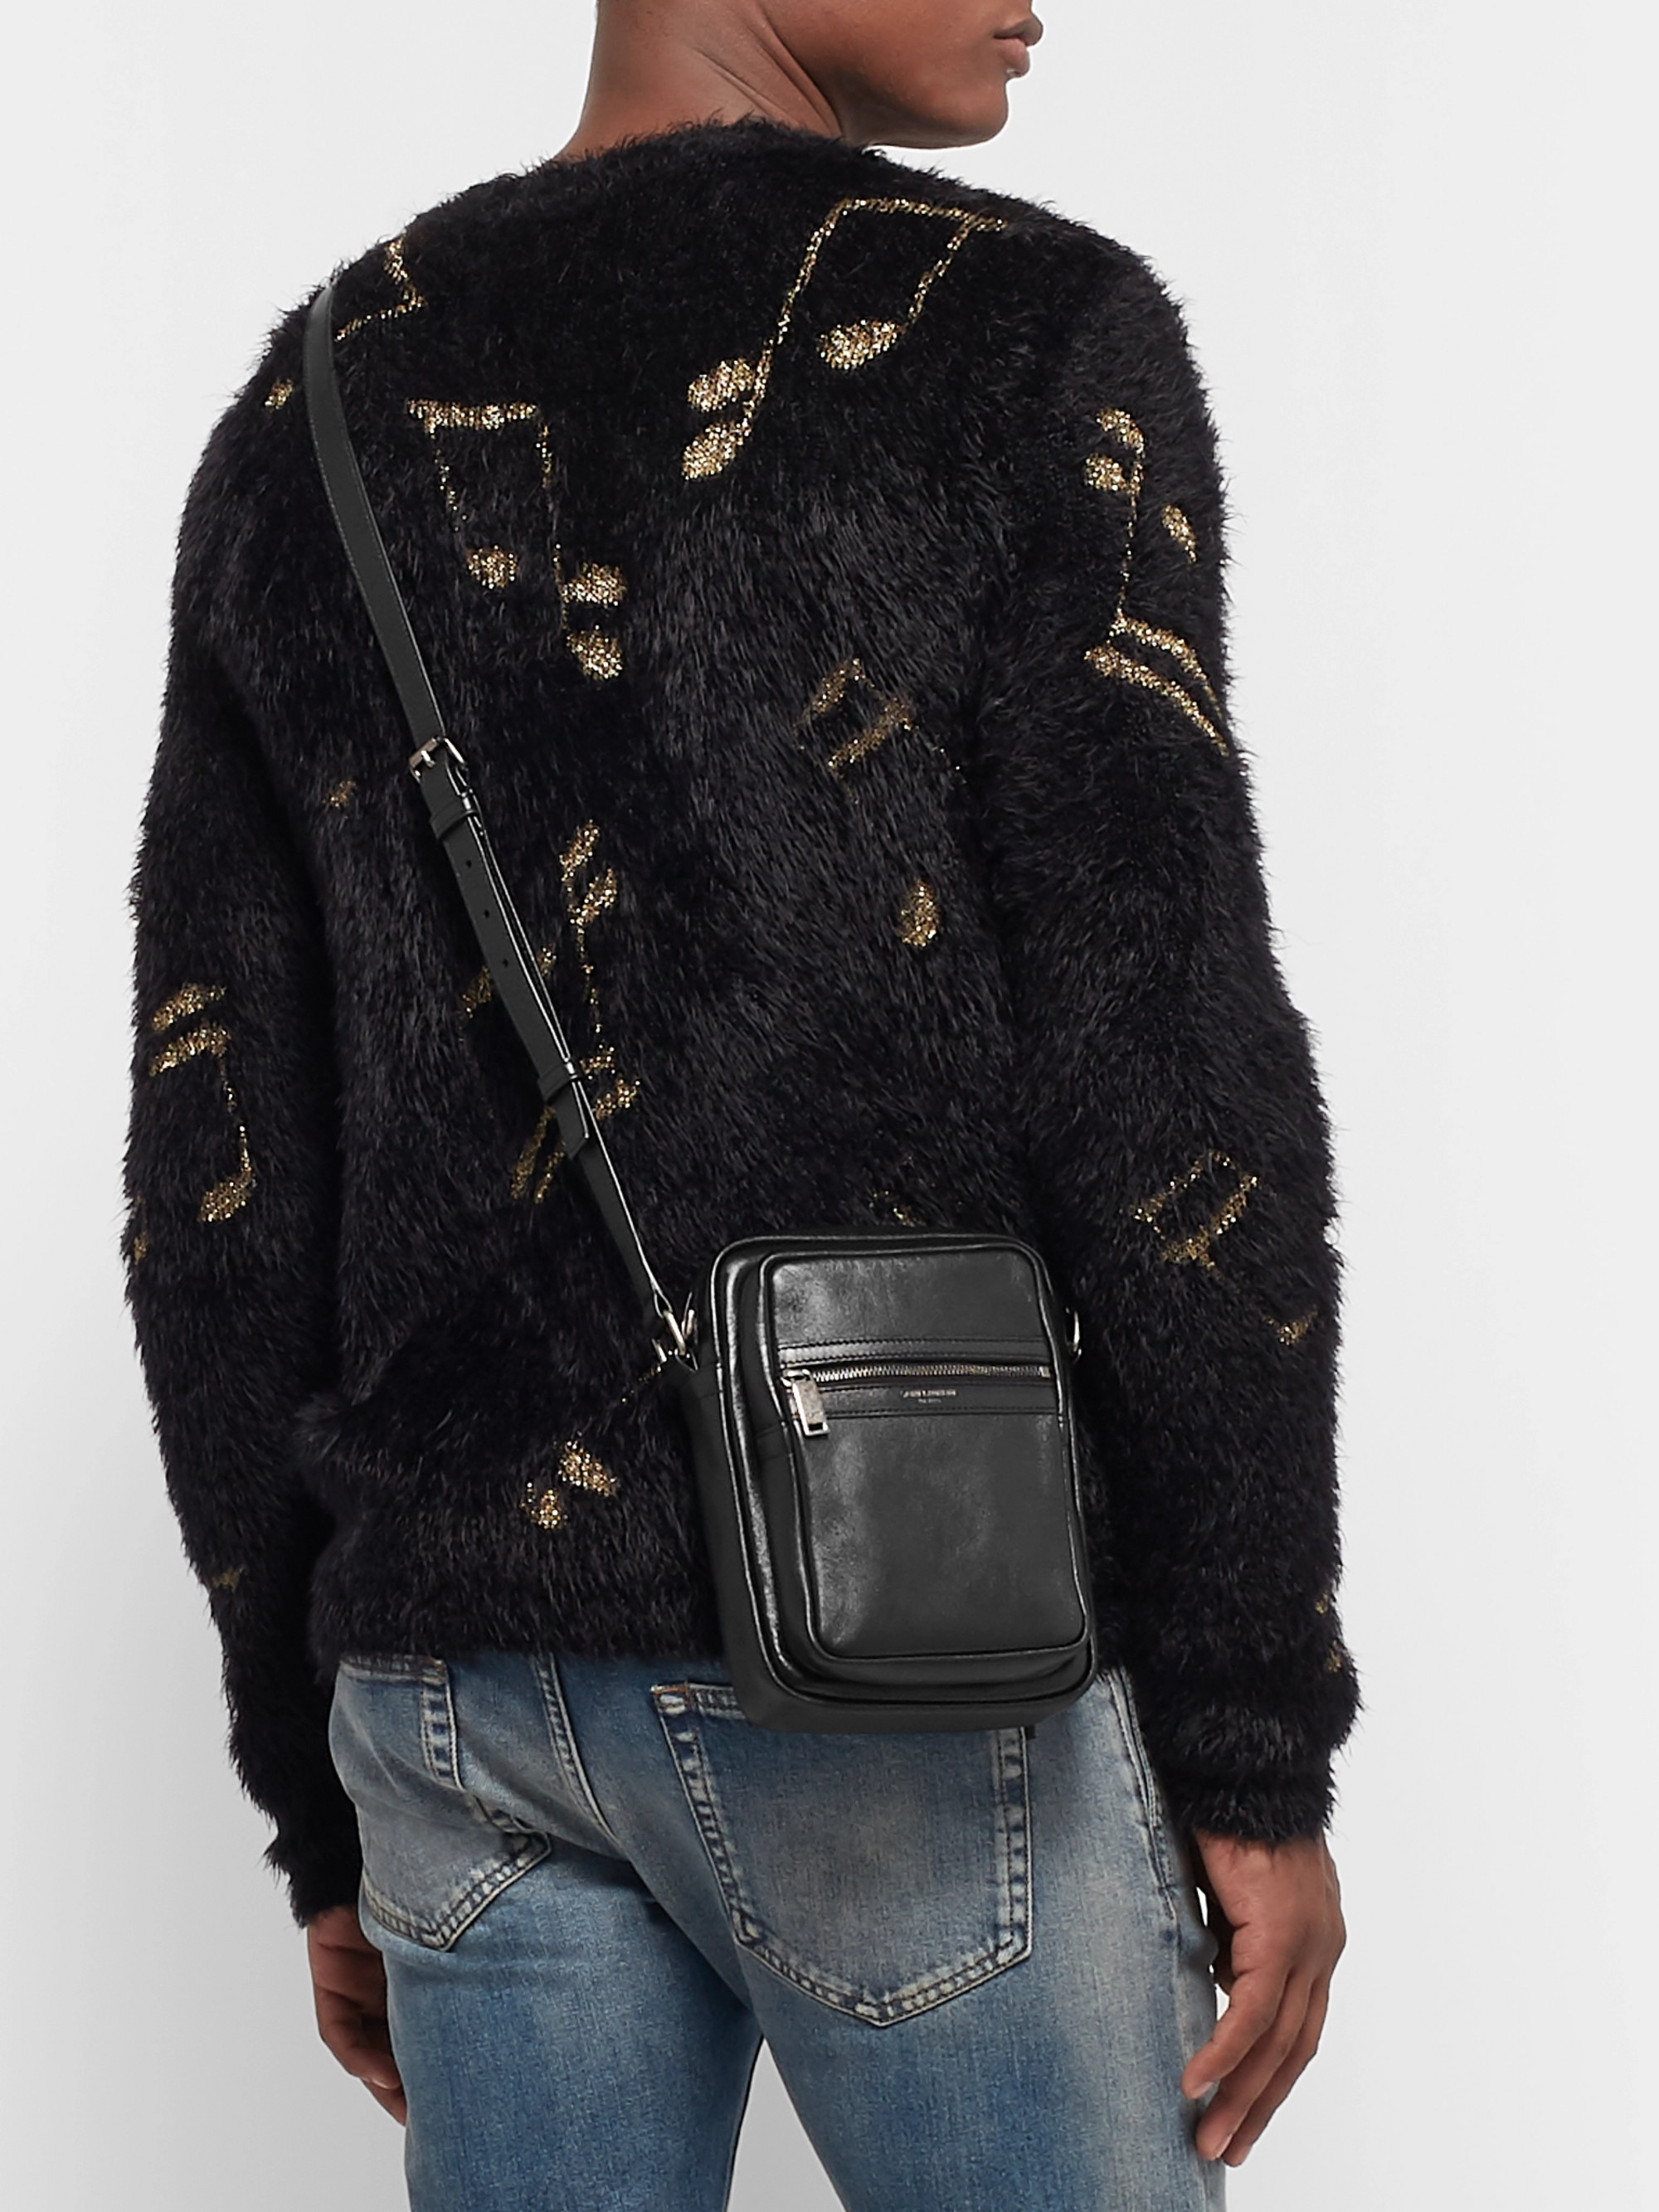 SAINT LAURENT Textured-Leather Messenger Bag